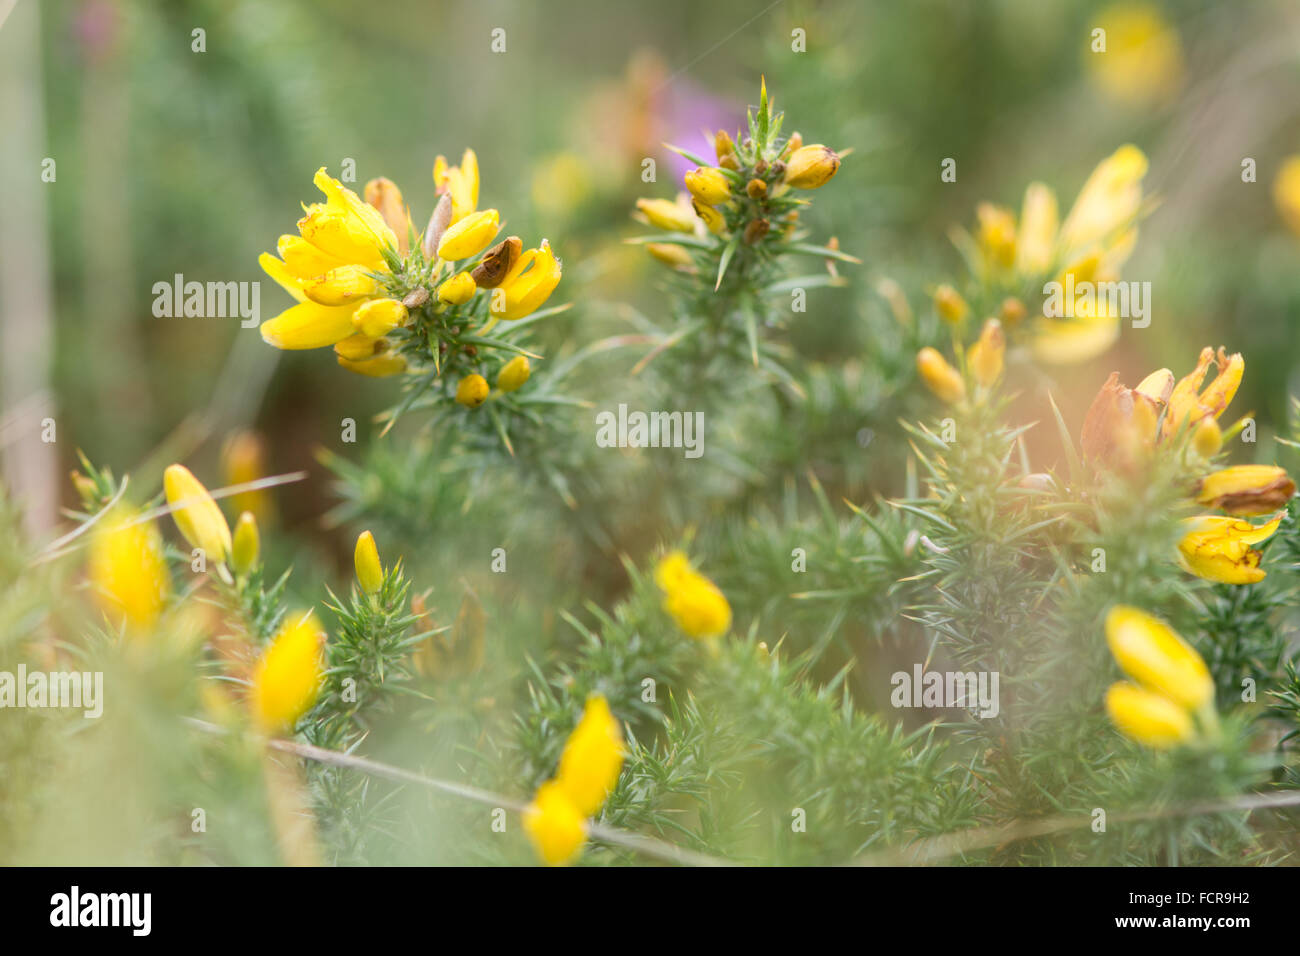 Prickly shrub stock photos prickly shrub stock images alamy western gorse ulex gallii in flower a prickly shrub in the pea family mightylinksfo